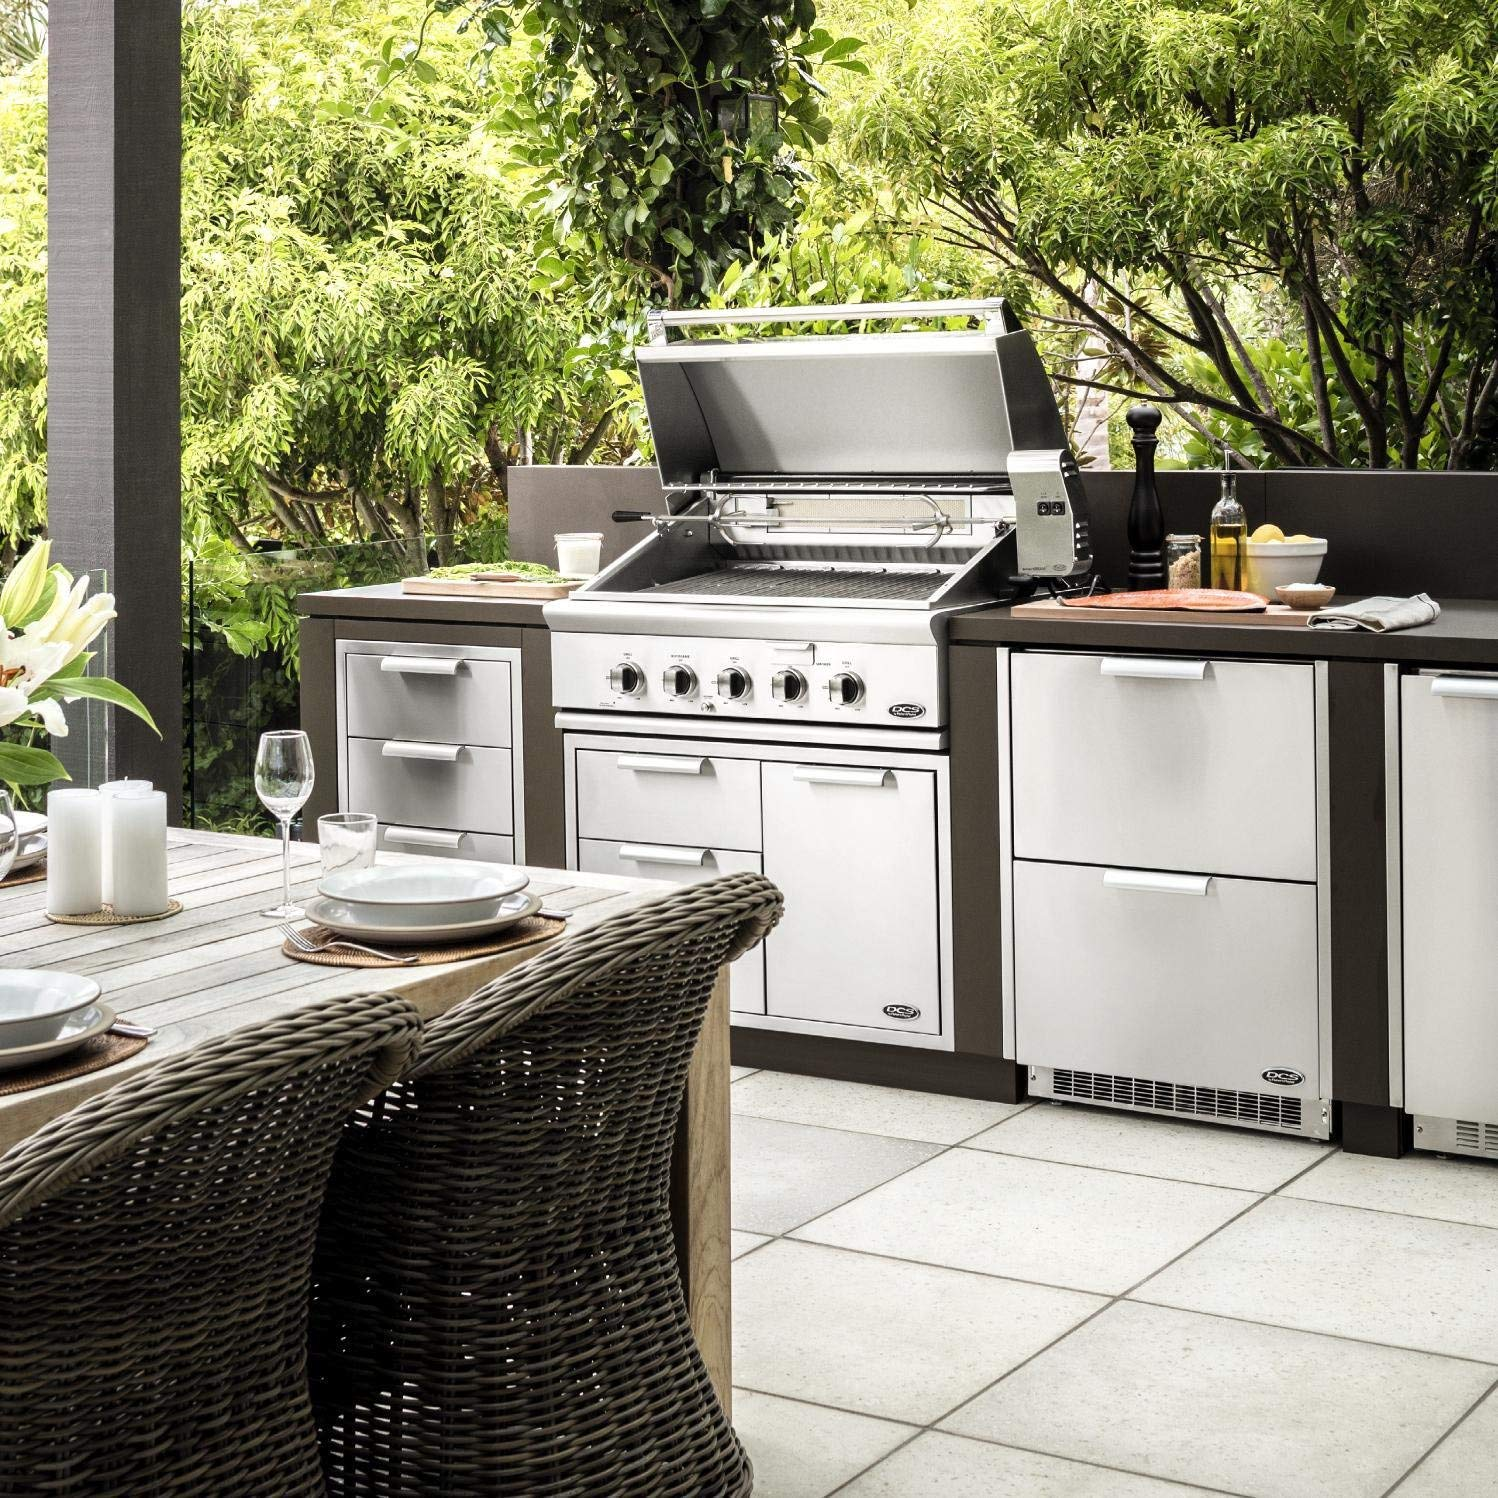 DCS 36-Inch Built-In Natural Gas Grill Review and Rating on Built In Grill Backyard id=71092